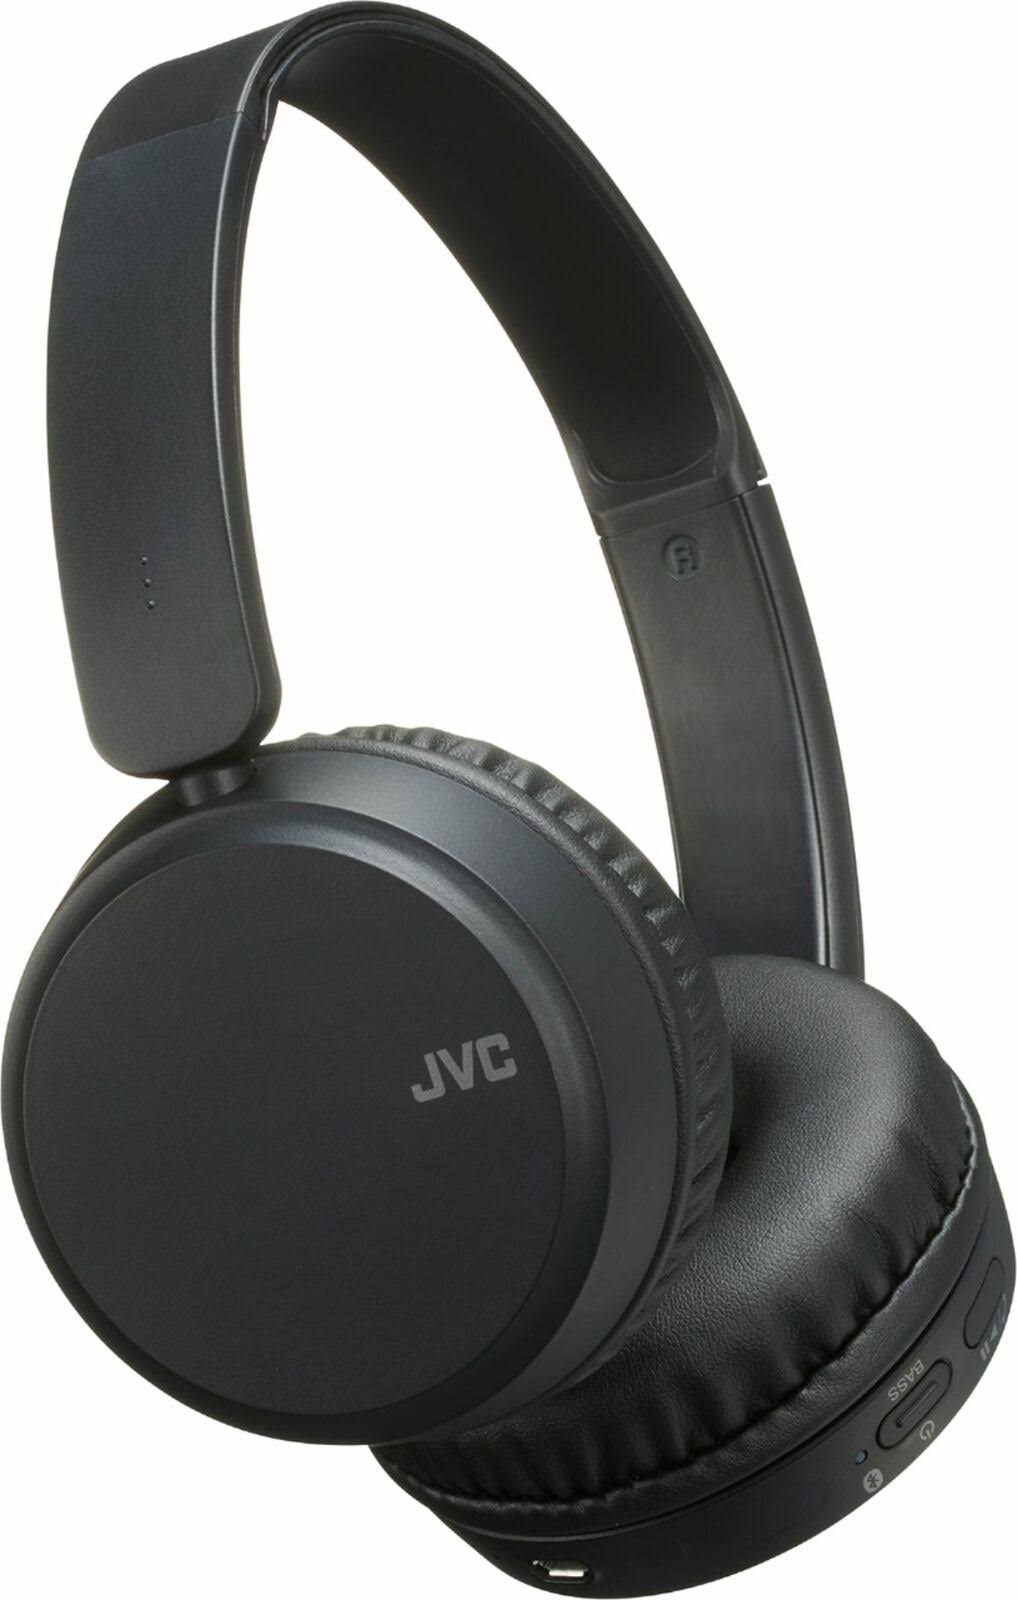 JVC Wireless Headphones - Black, Deep Bass